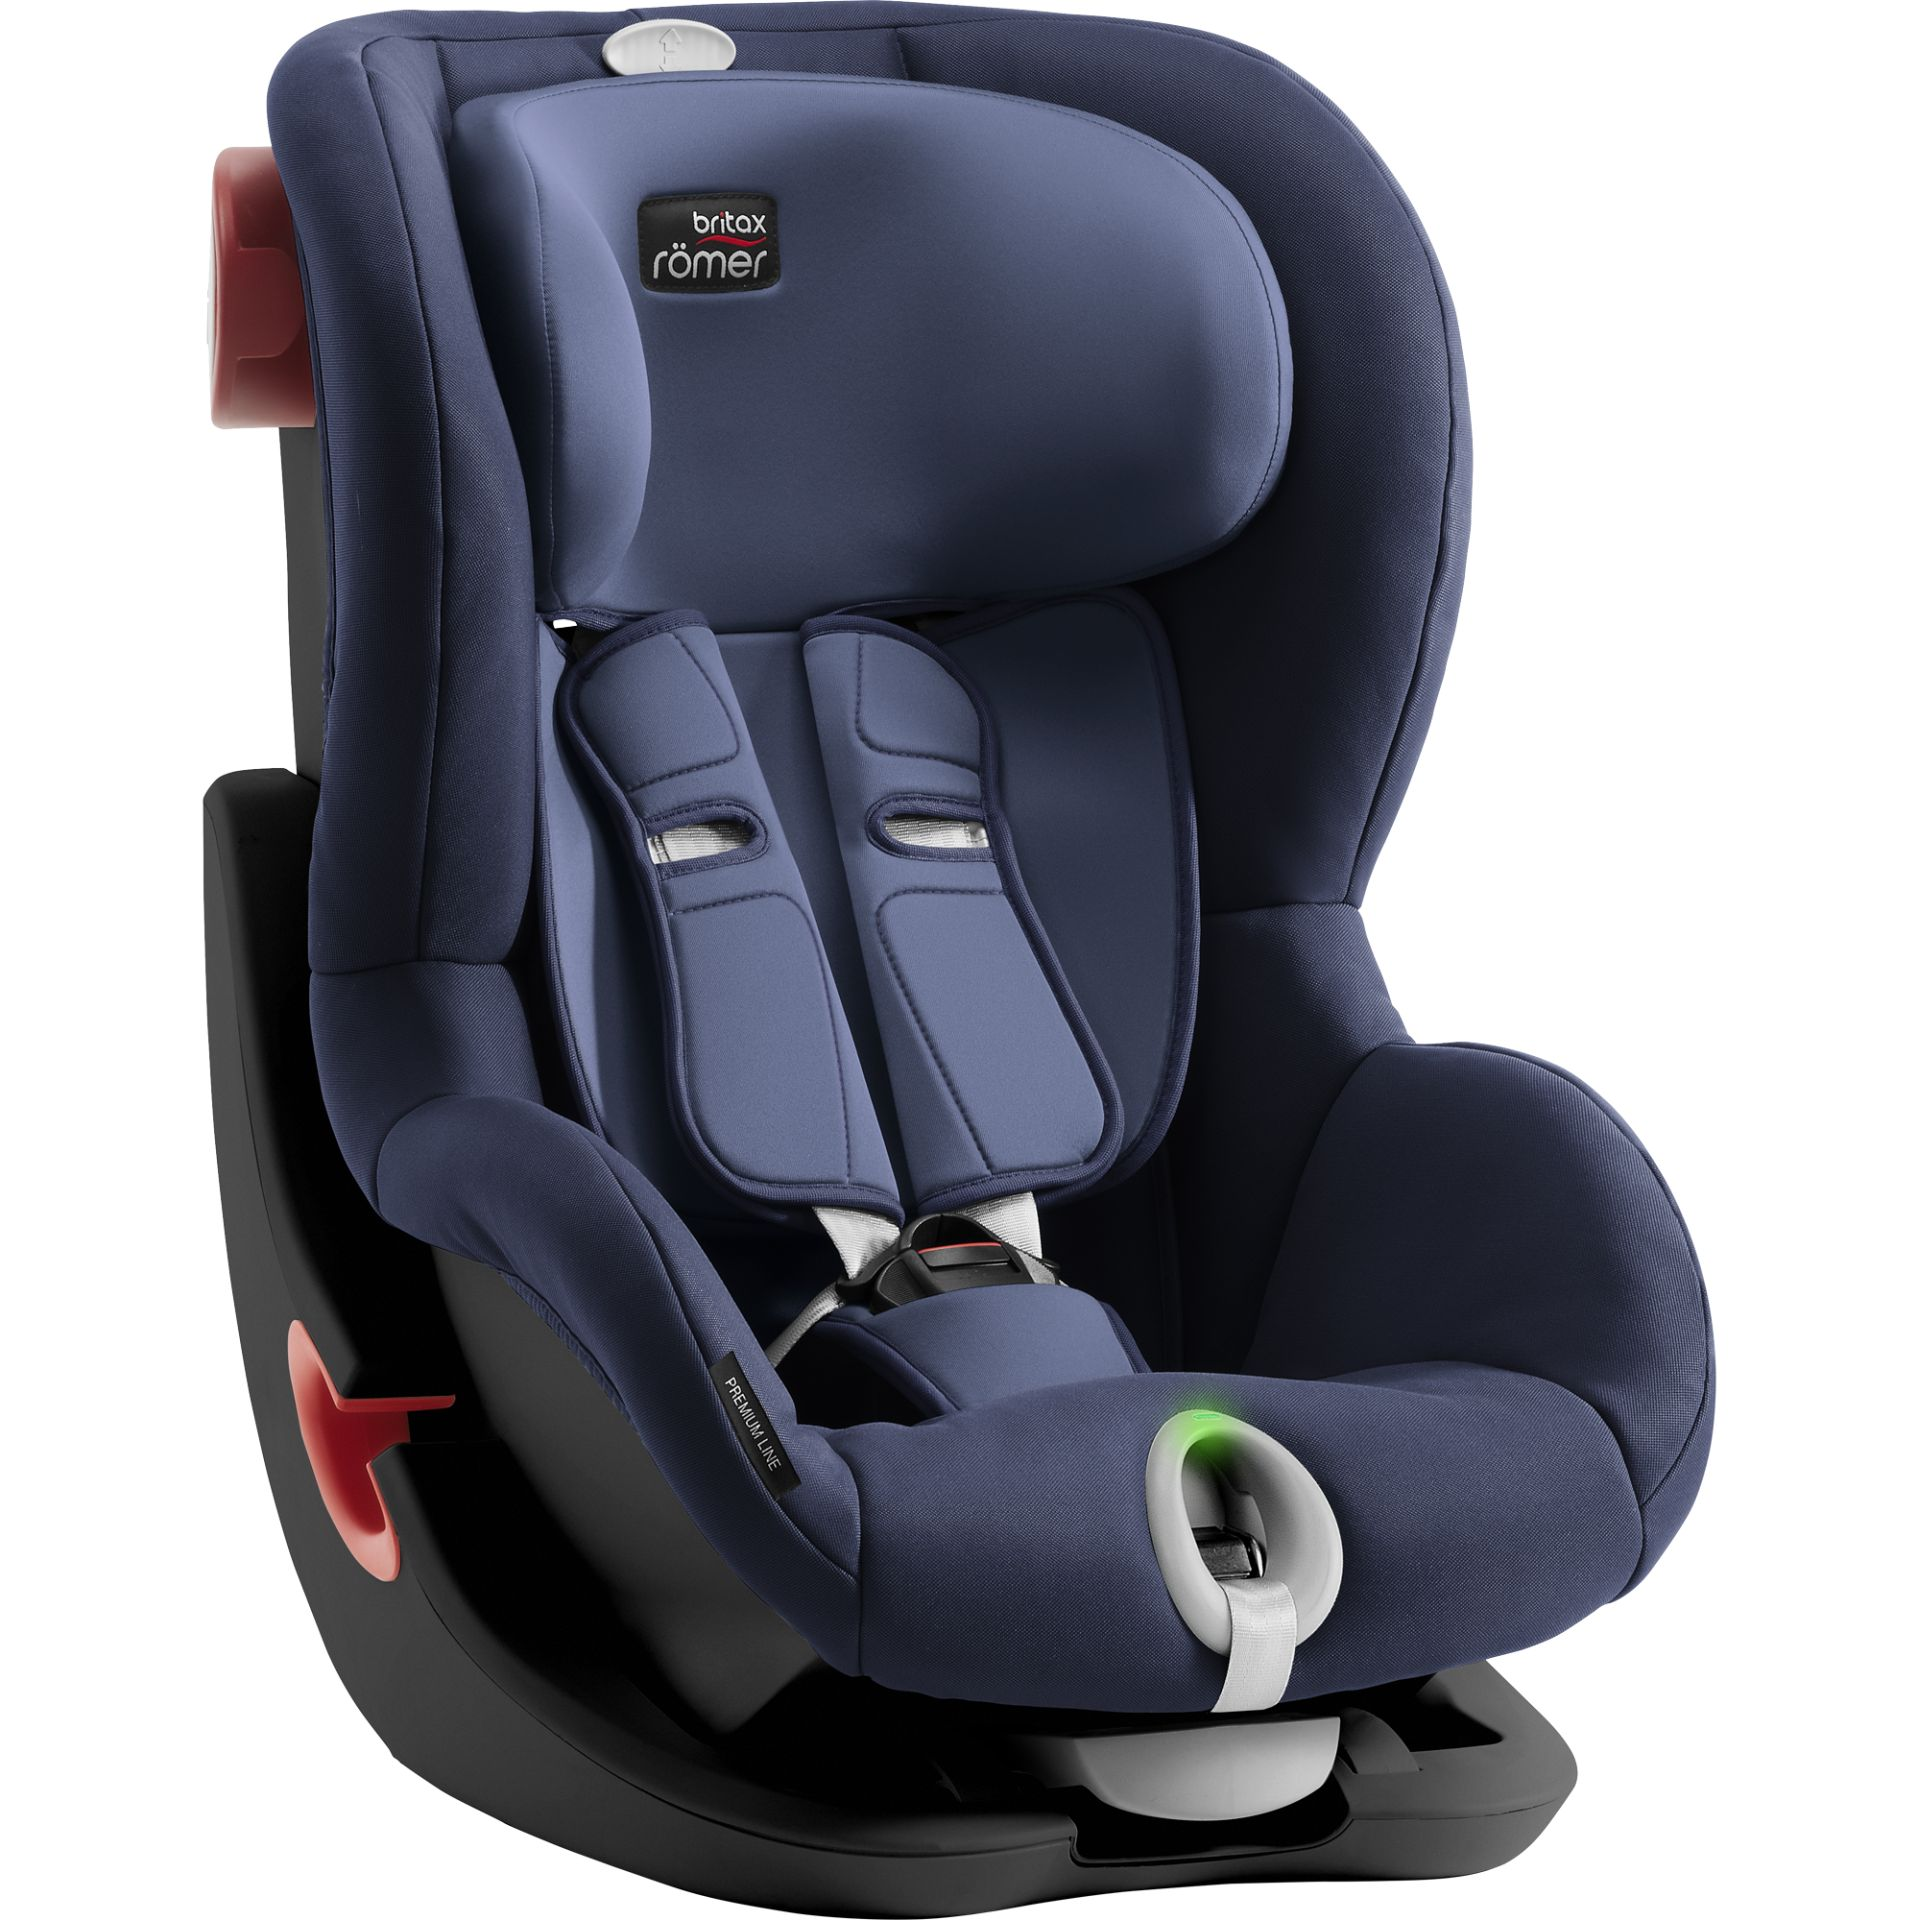 britax r mer car seat king ii ls black series 2018 moonlight blue buy at kidsroom car seats. Black Bedroom Furniture Sets. Home Design Ideas